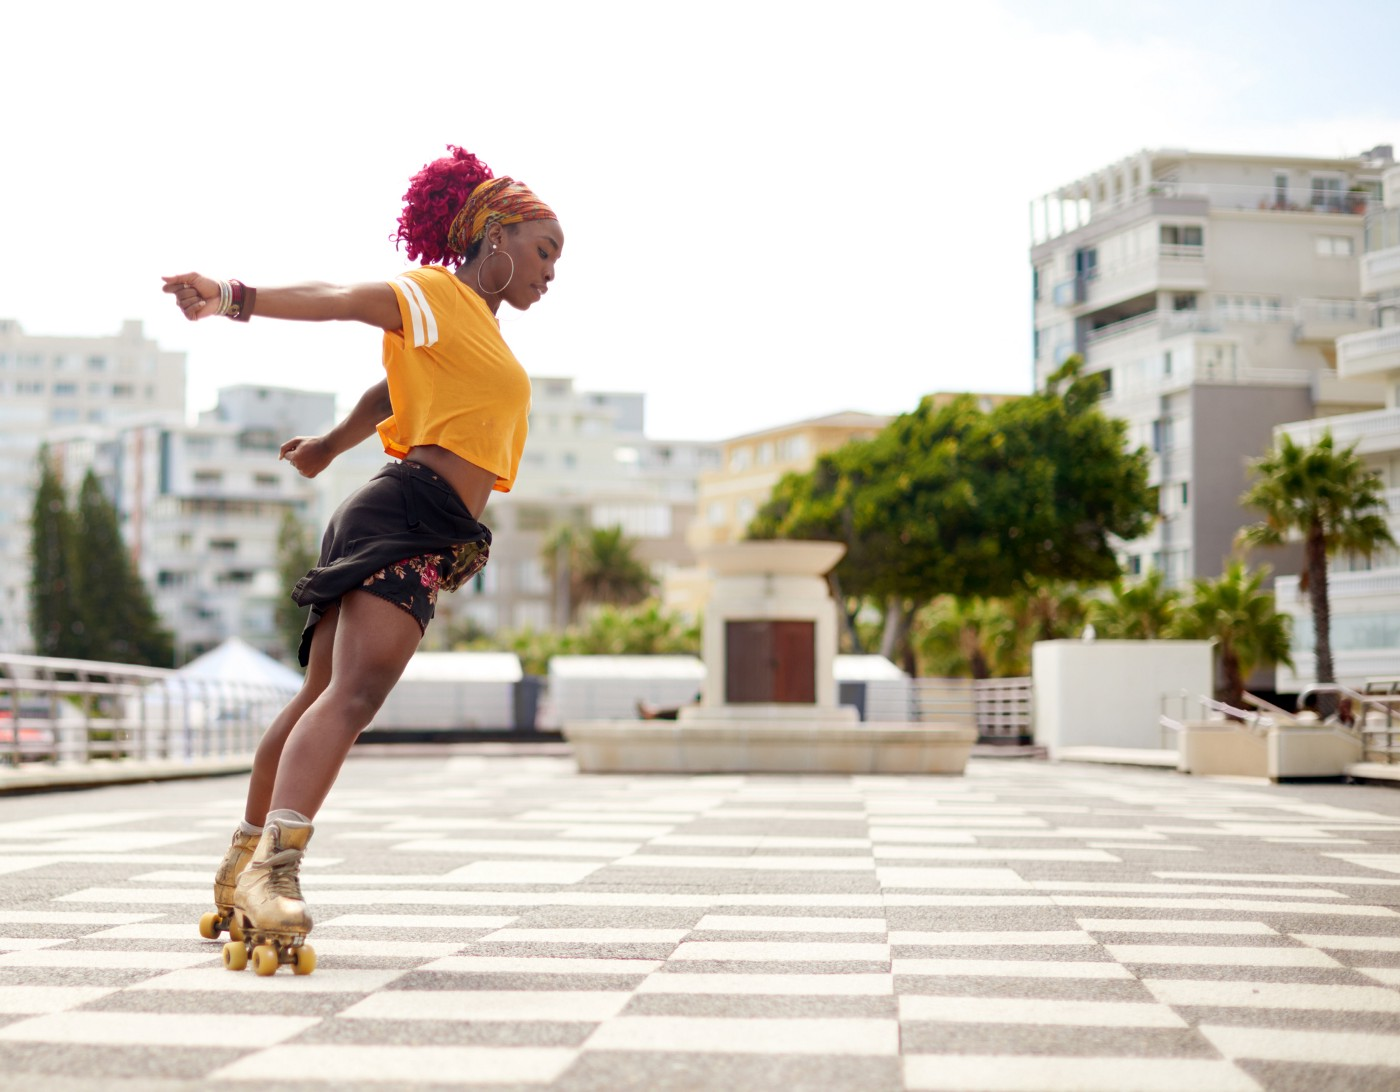 Black woman roller skating outside.